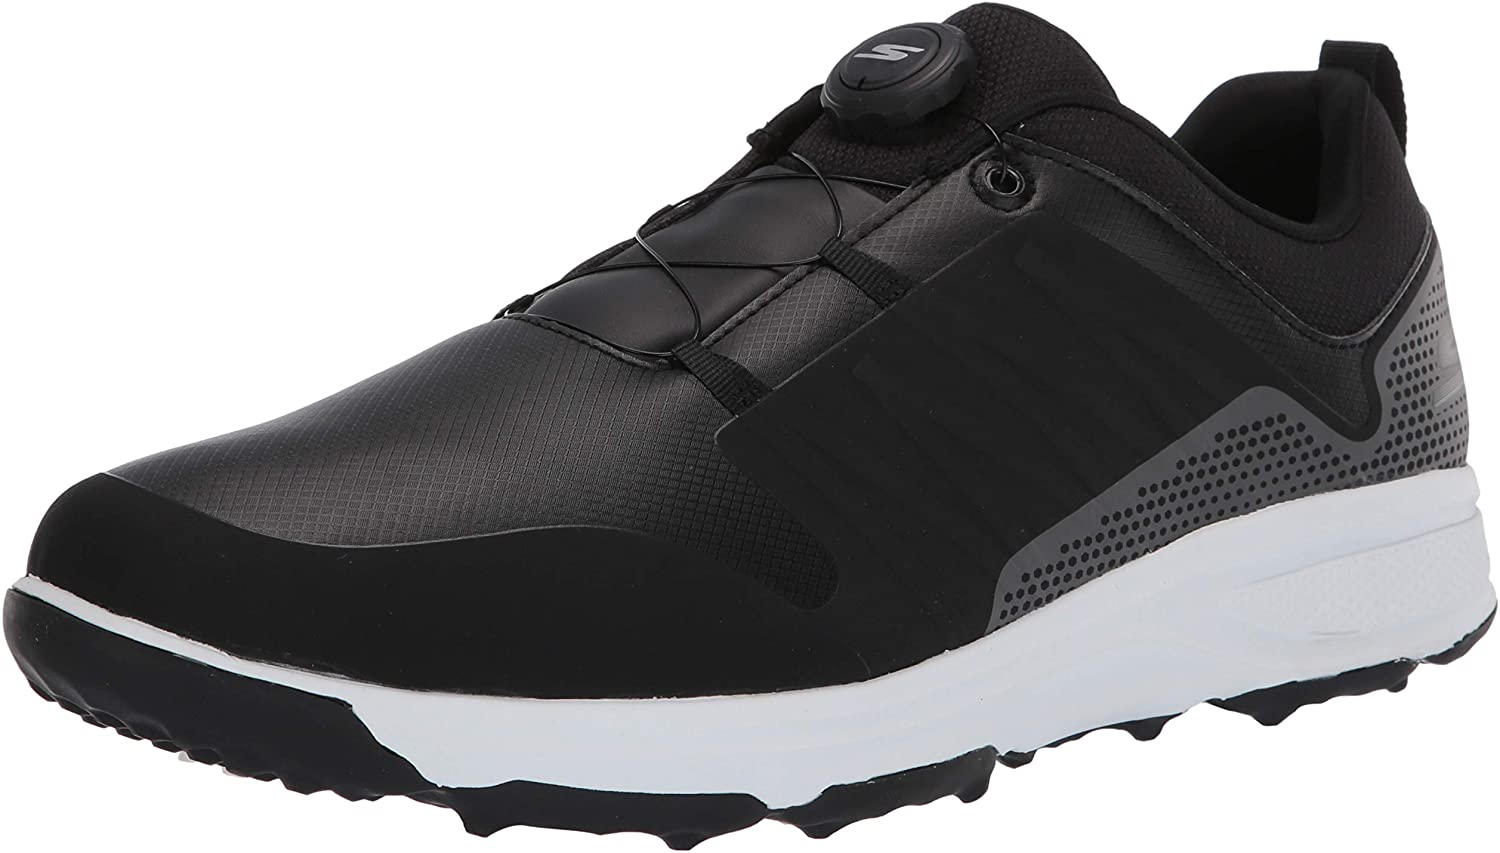 Skechers Go Golf Men's Torque Free shipping anywhere in the nation Shoe Safety and trust Twist Waterproof